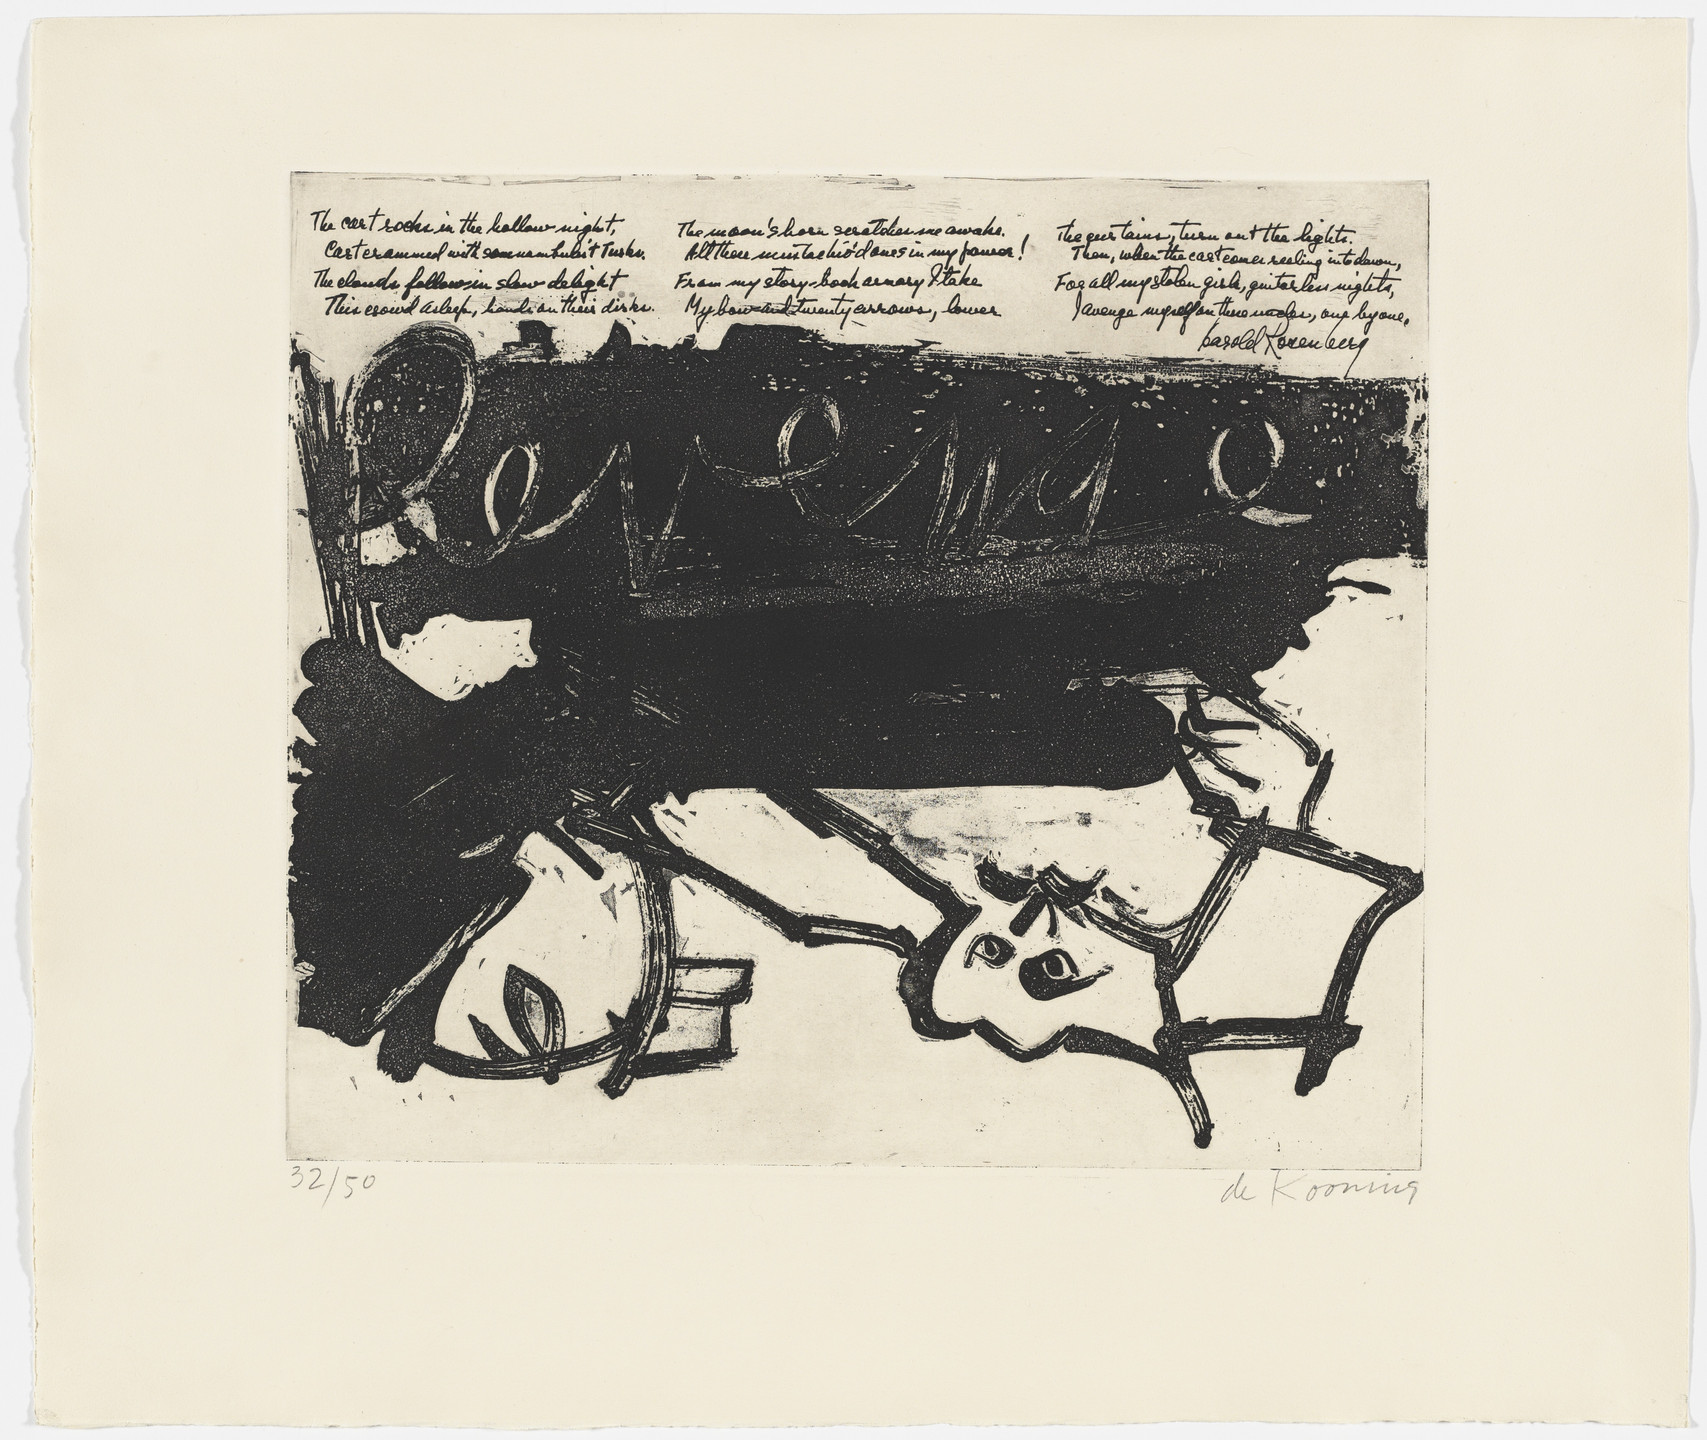 Willem de Kooning, Harold Rosenberg. Revenge (in-text plate, folio 8) from 21 Etchings and Poems. 1960